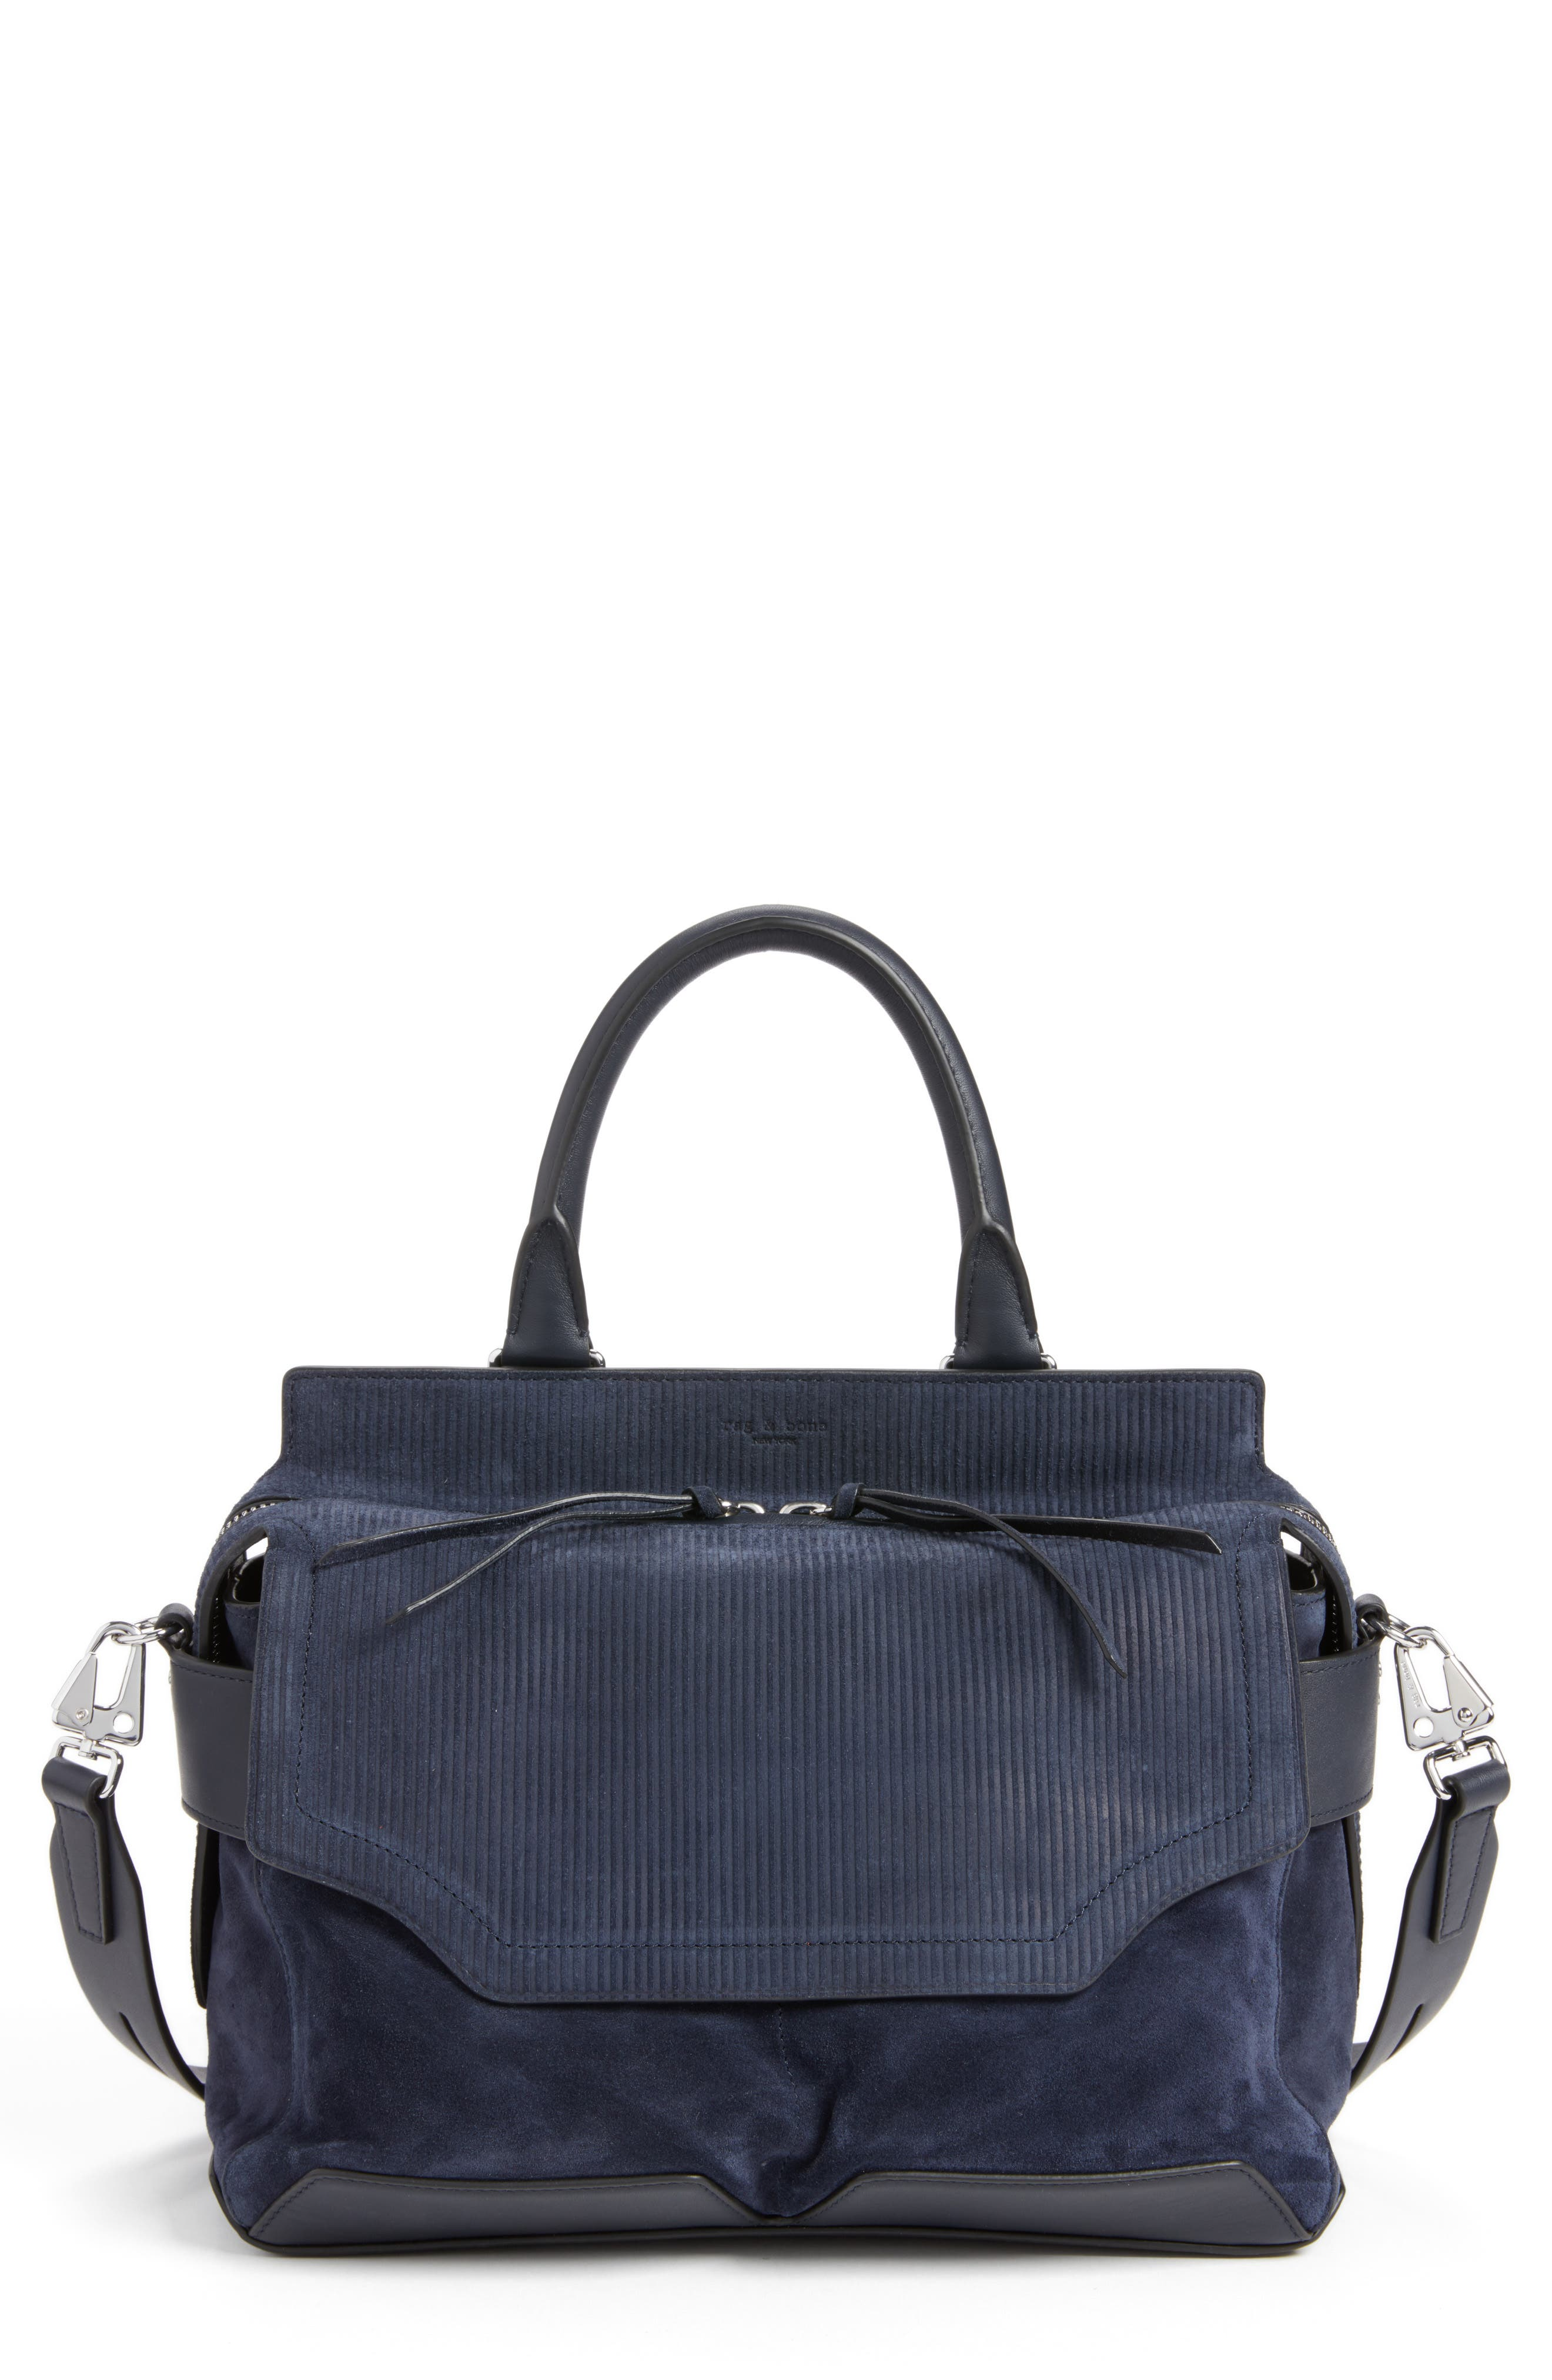 Pilot Calfskin Leather Satchel,                         Main,                         color, Navy Suede